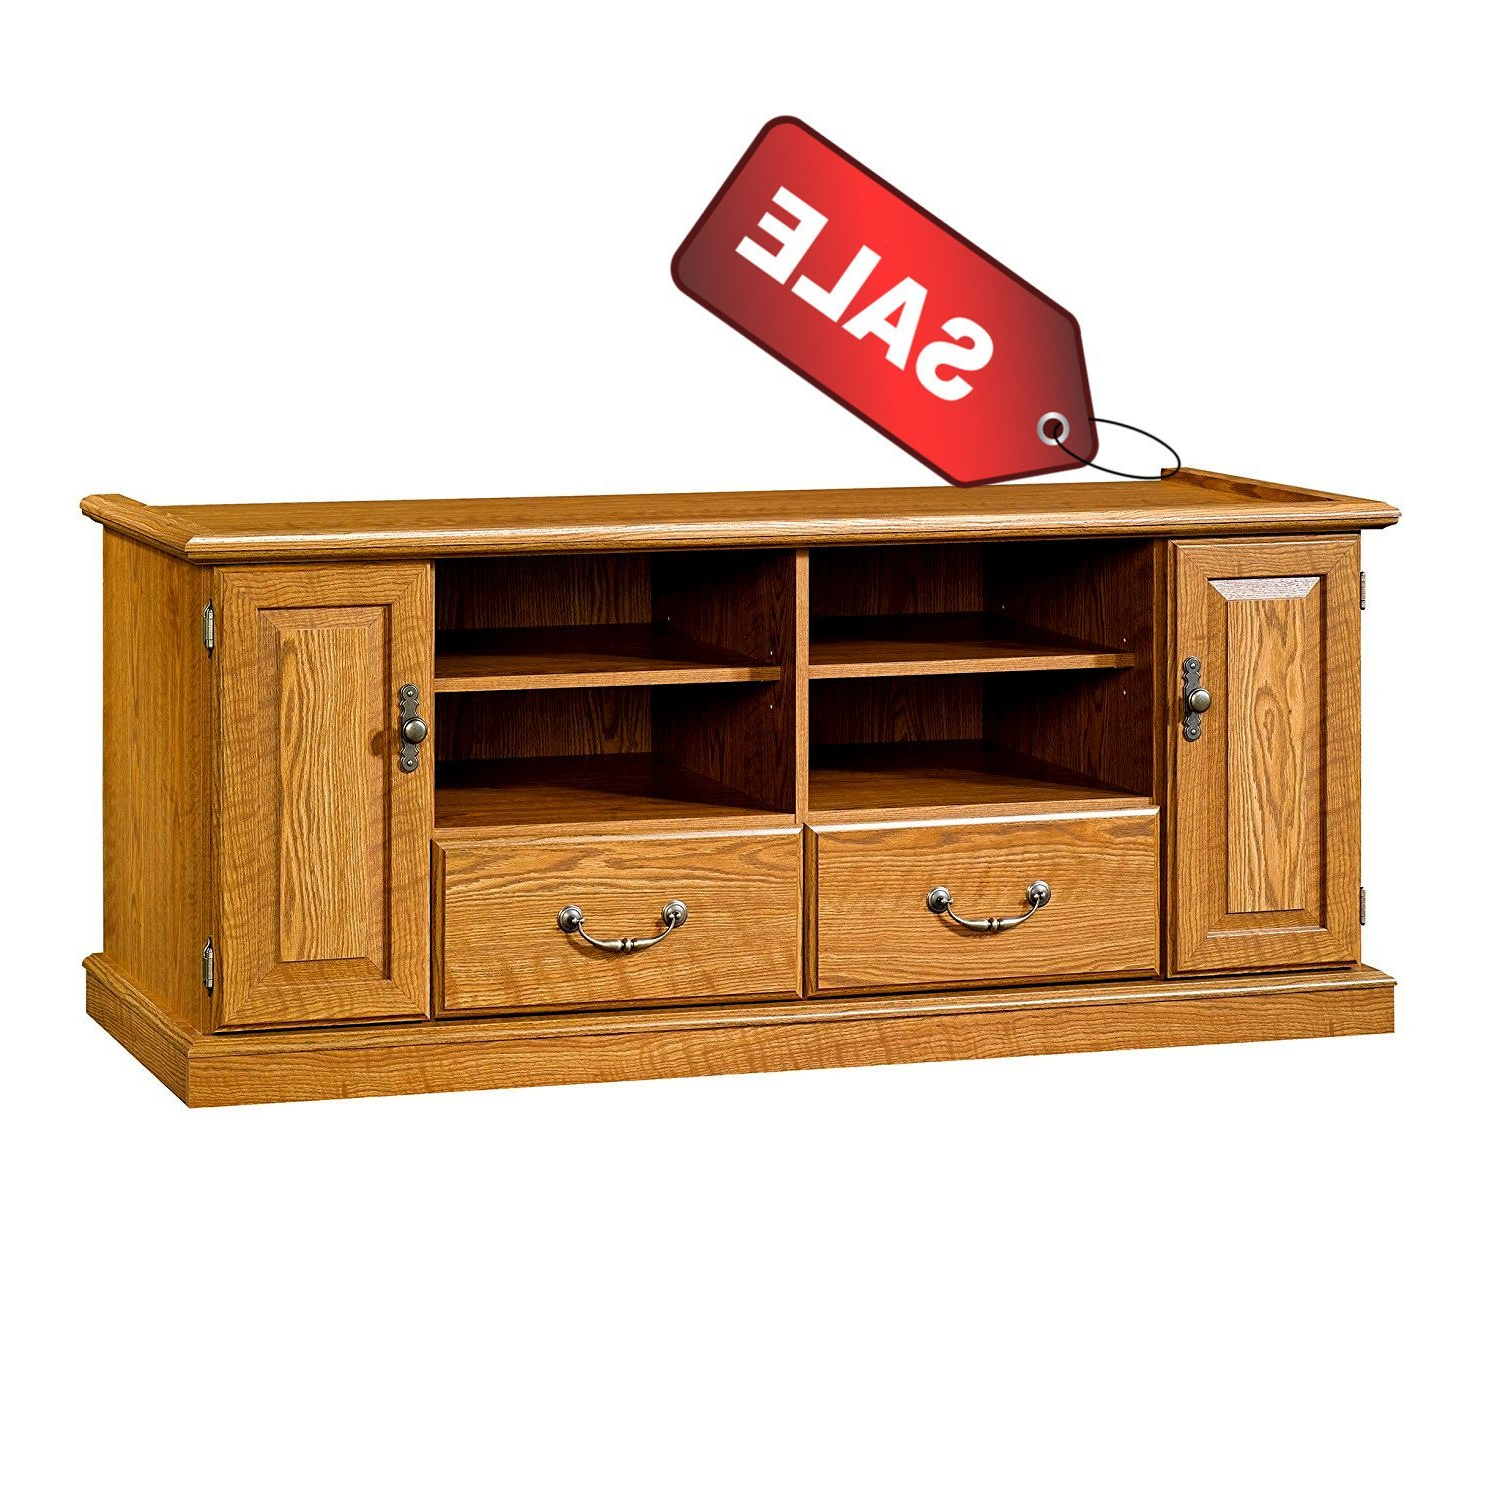 Most Popular Cheap Rustic Oak Tv Cabinets, Find Rustic Oak Tv Cabinets Deals On Regarding Oak Tv Cabinets For Flat Screens (View 10 of 20)